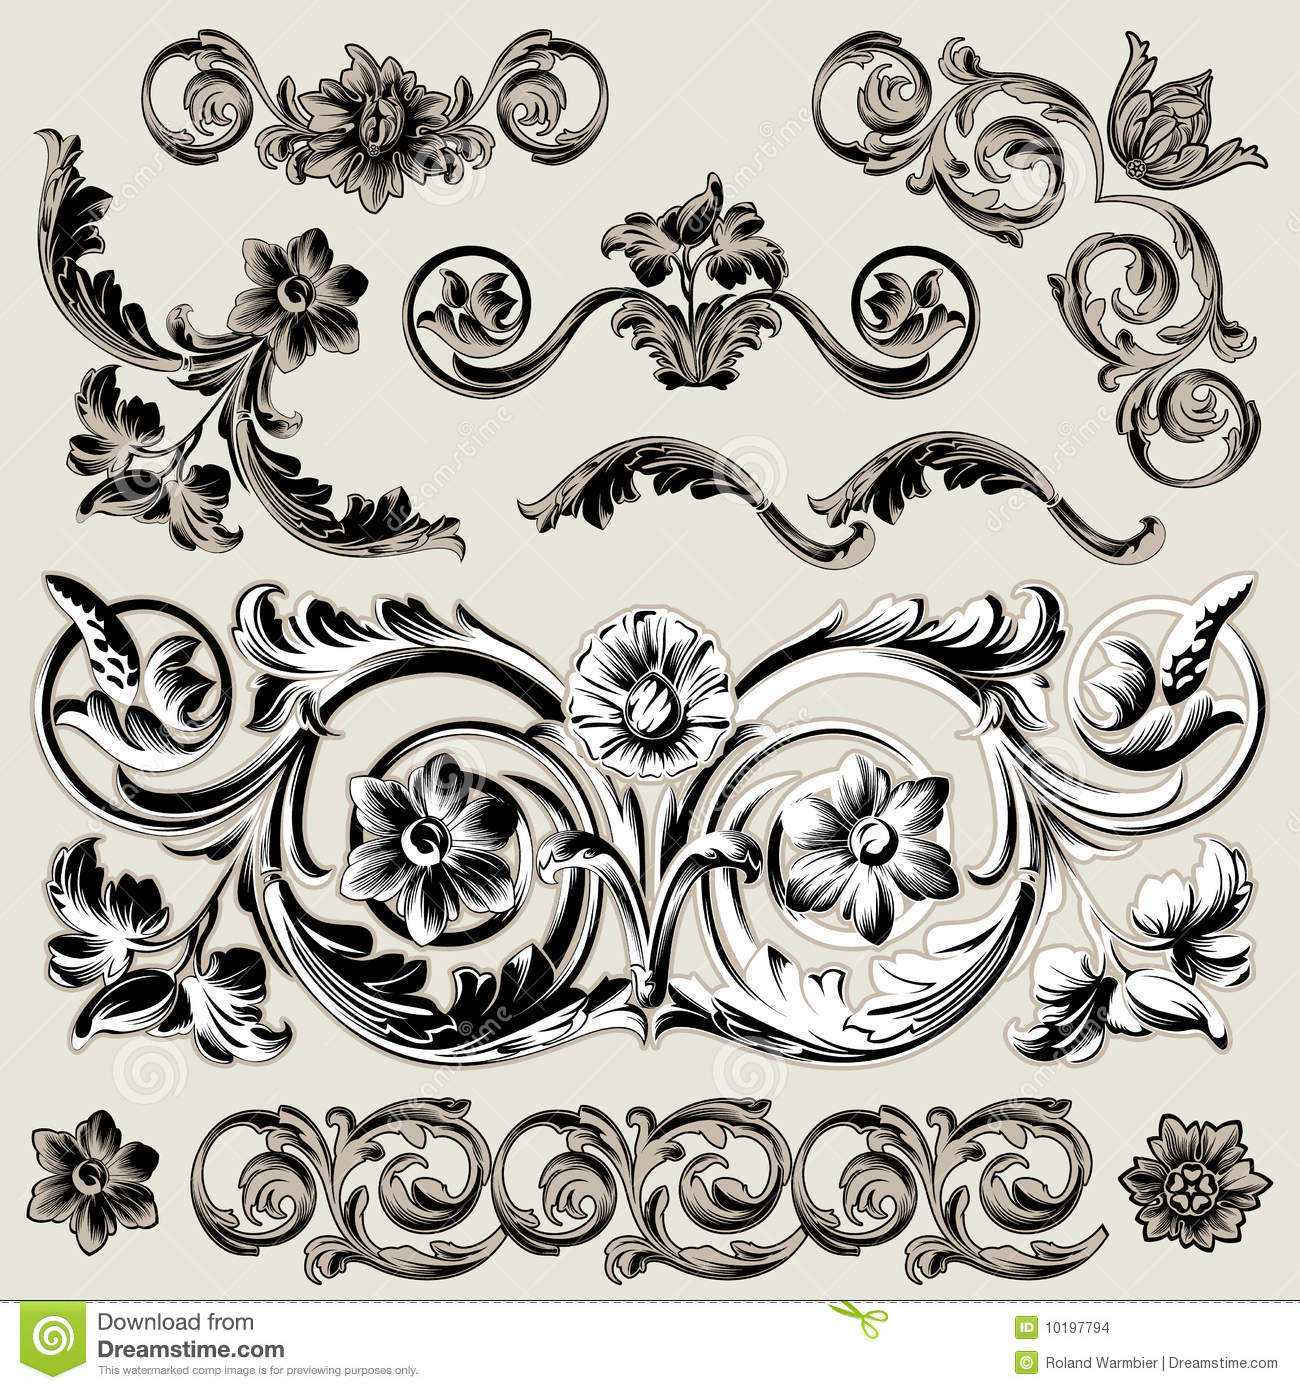 Floral Decoration set of classic floral decoration elements stock images - image